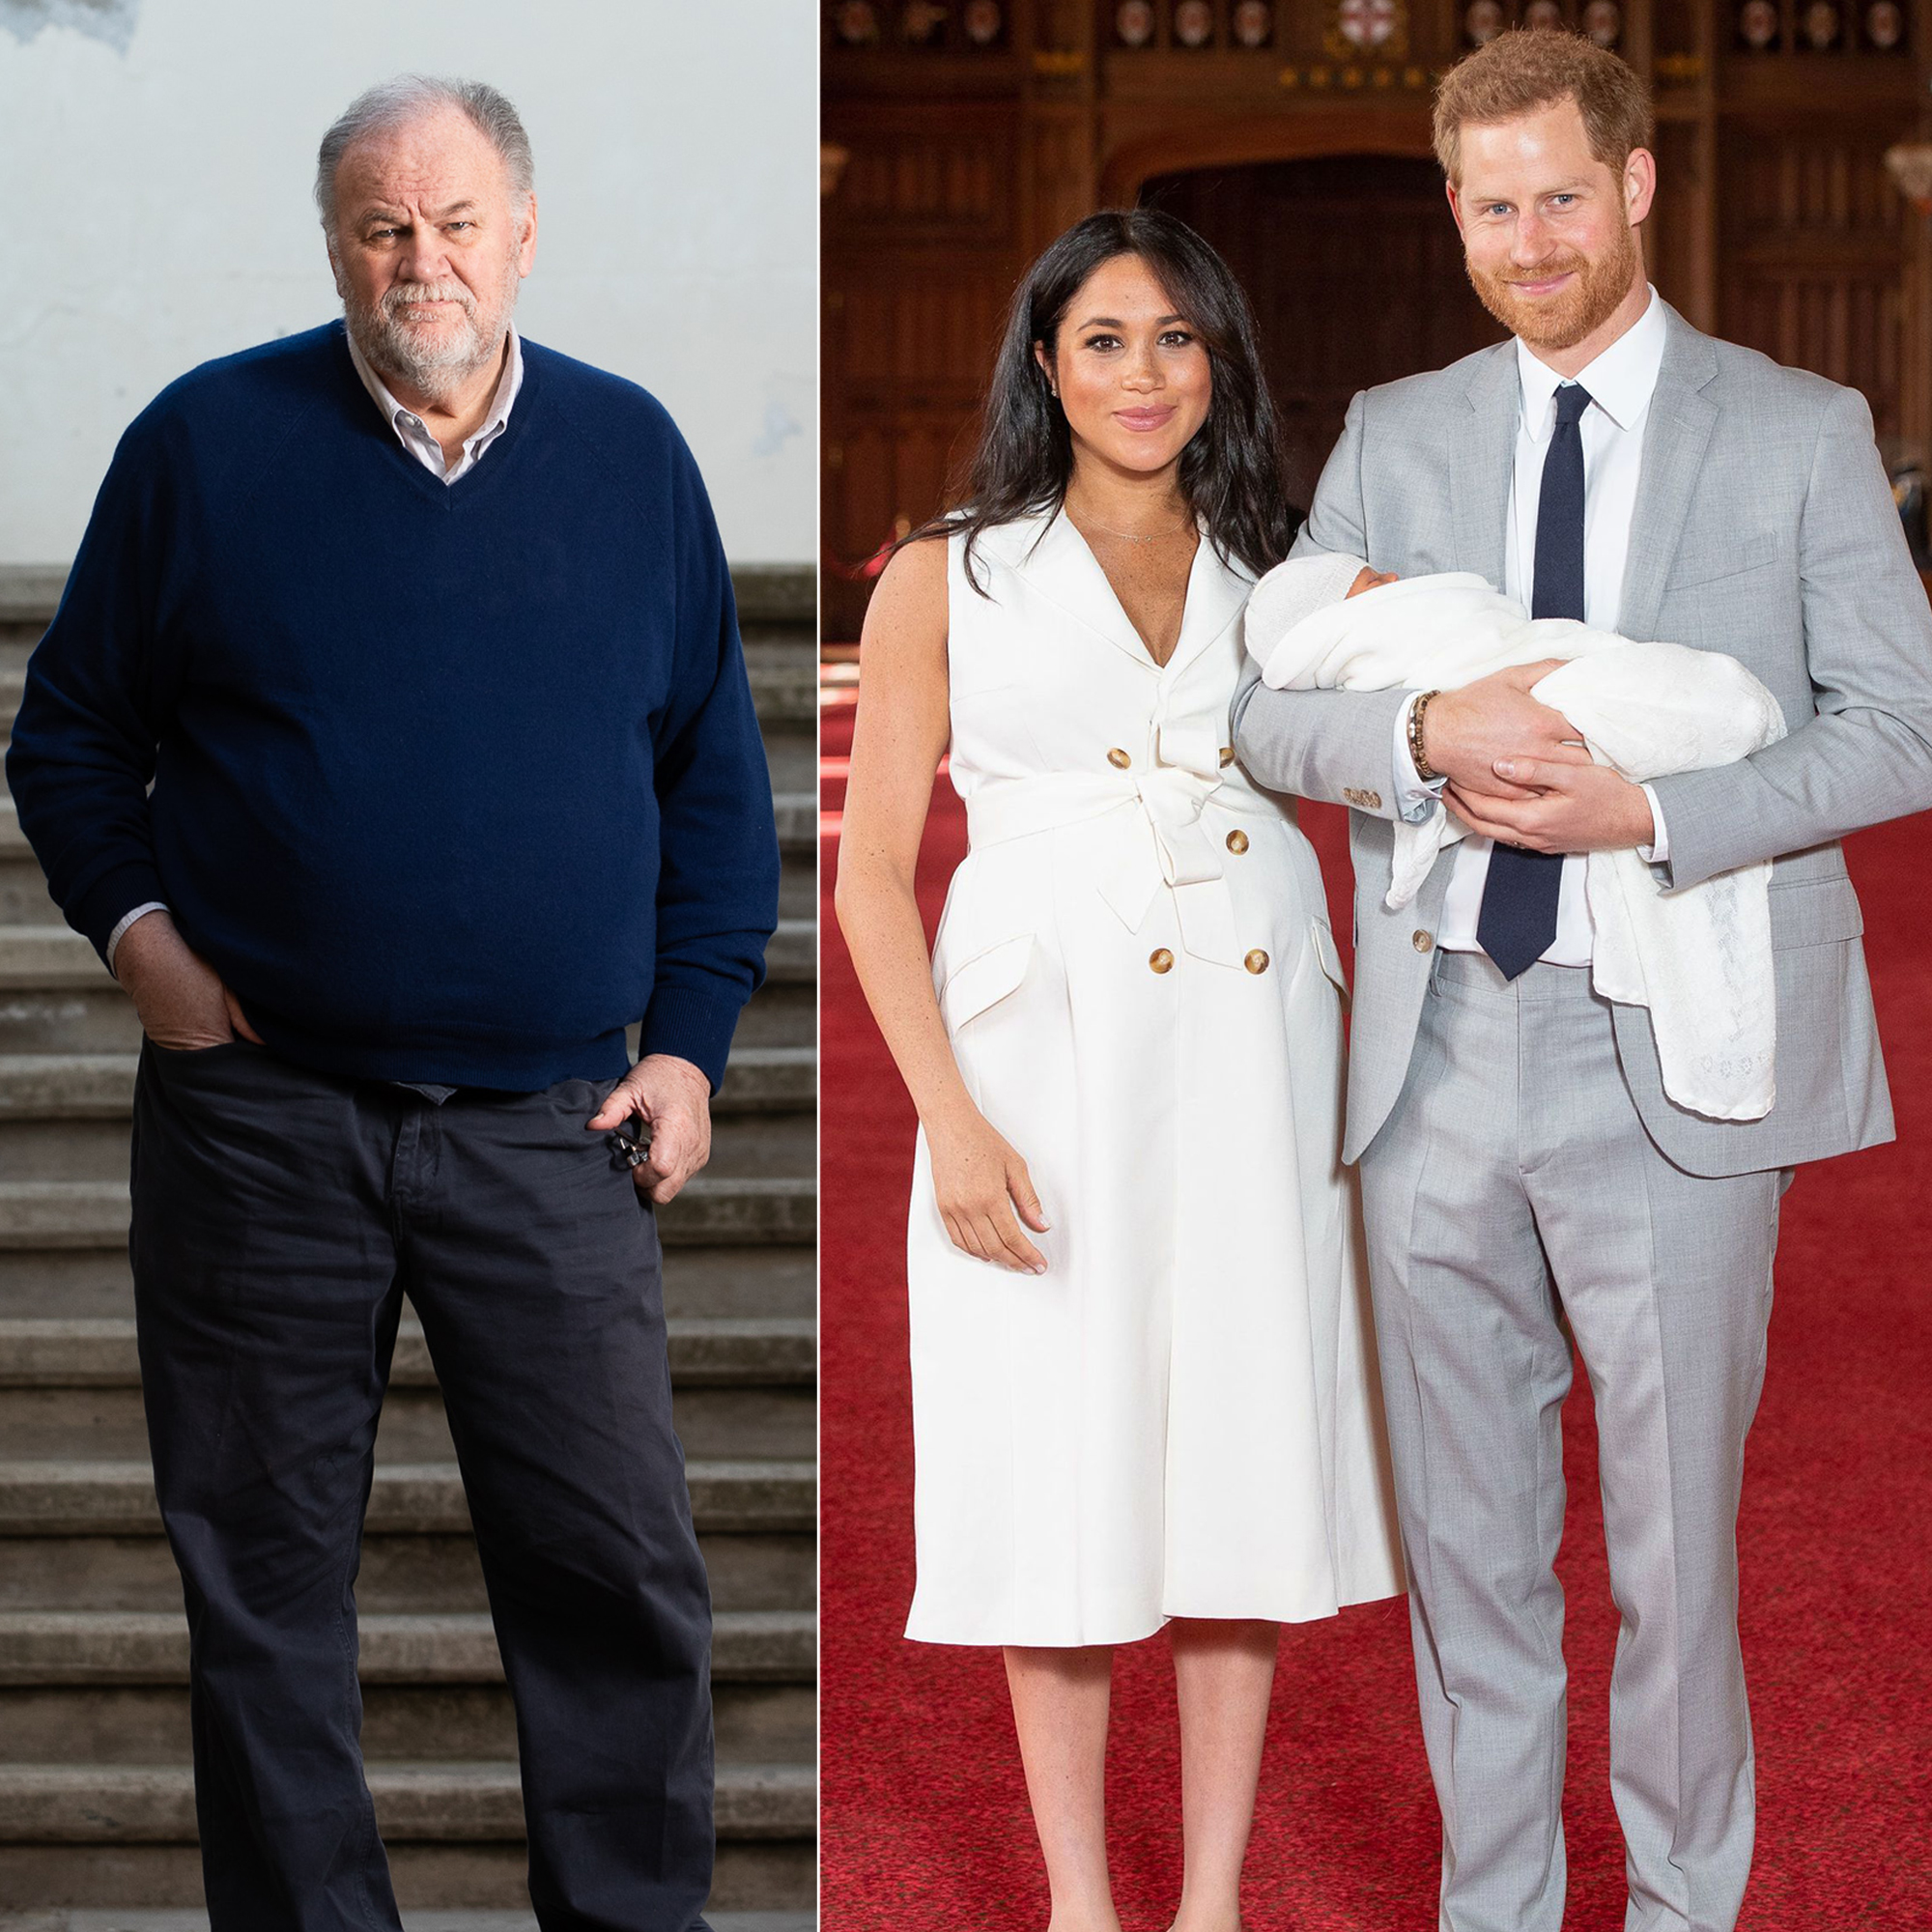 Duchess Meghan's Estranged Father Says He Wants To Make Up